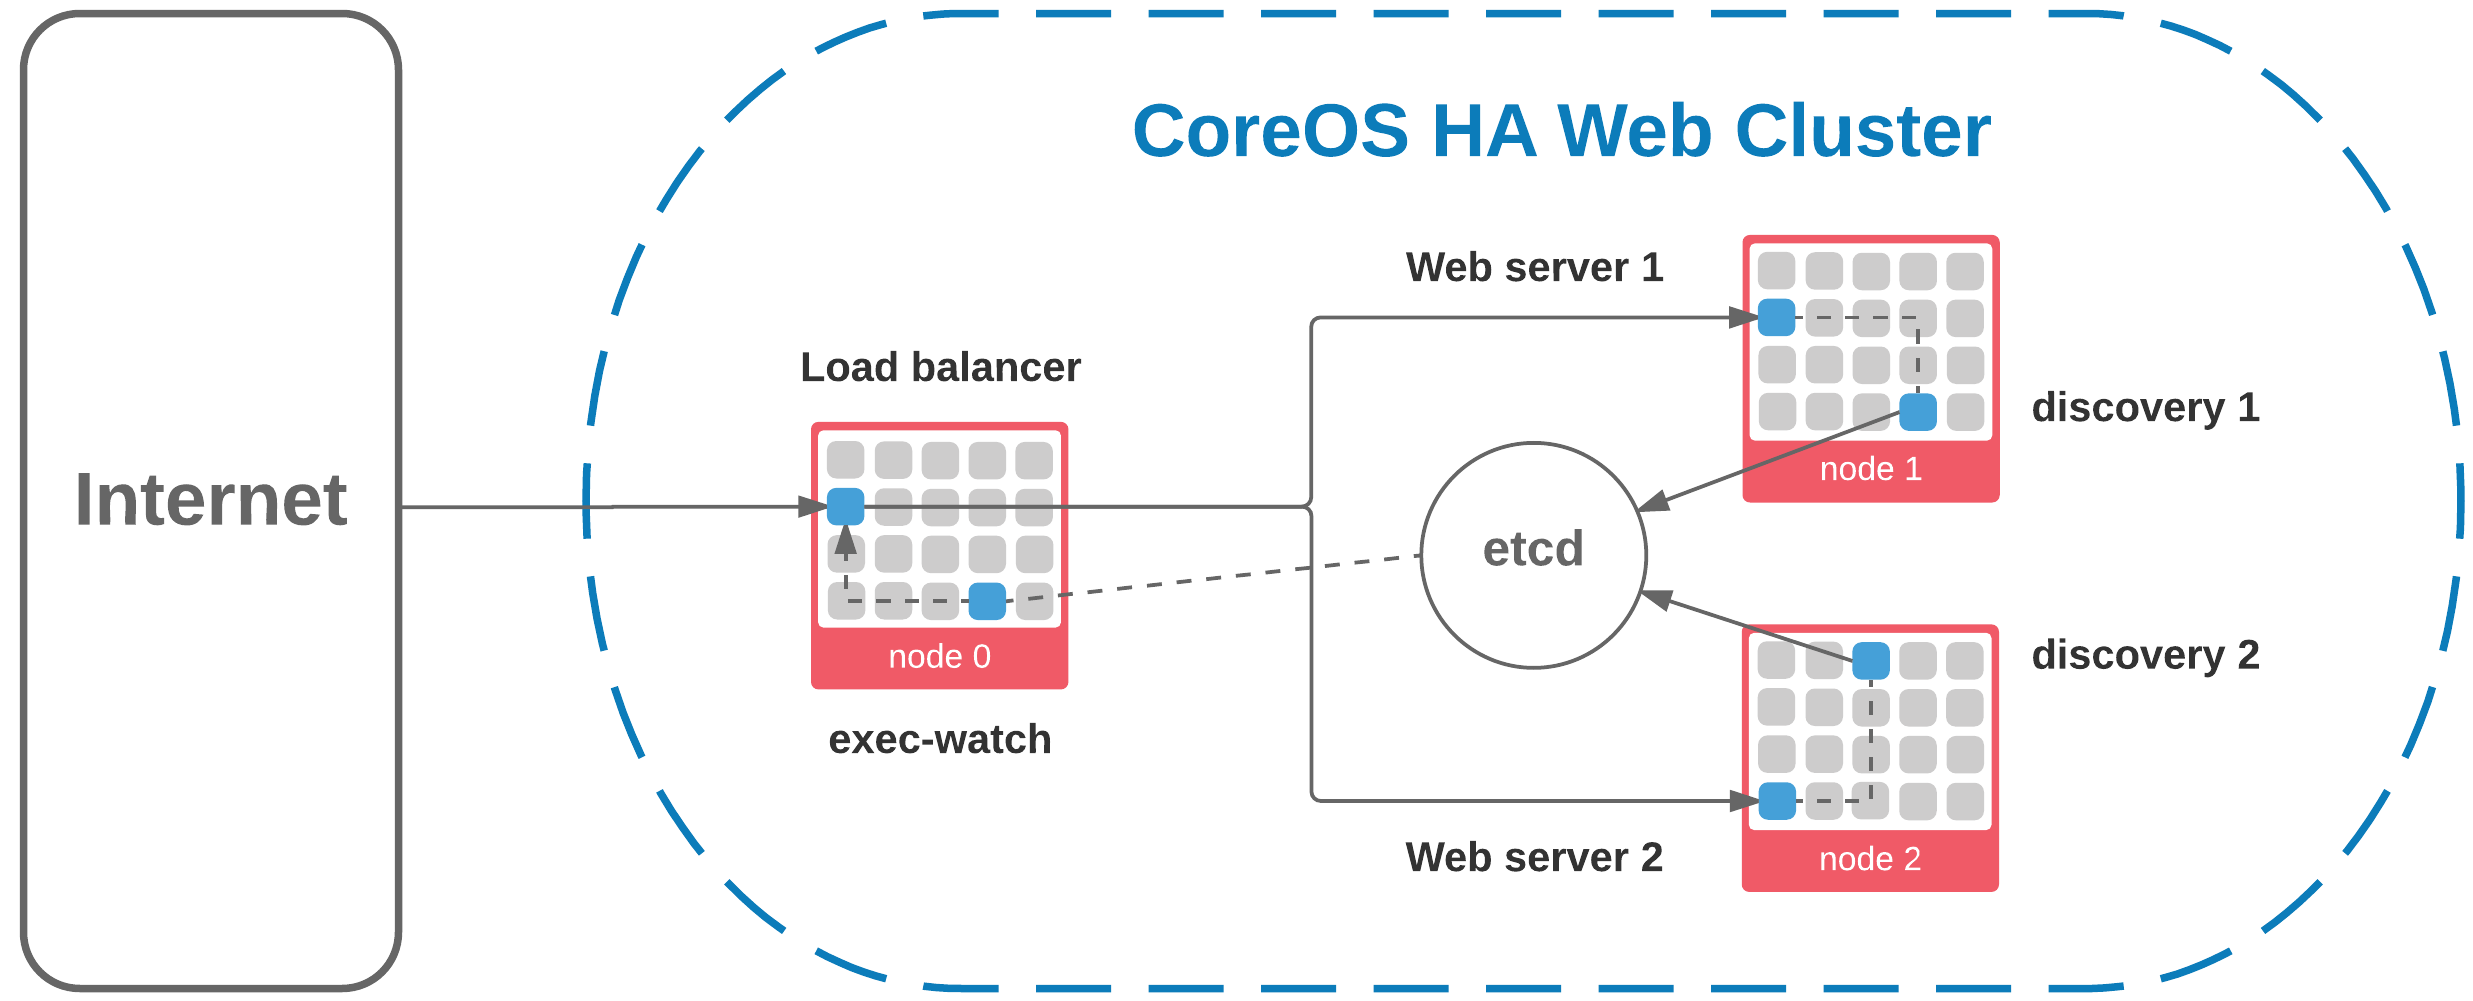 CoreOS HA Web Cluster diagram